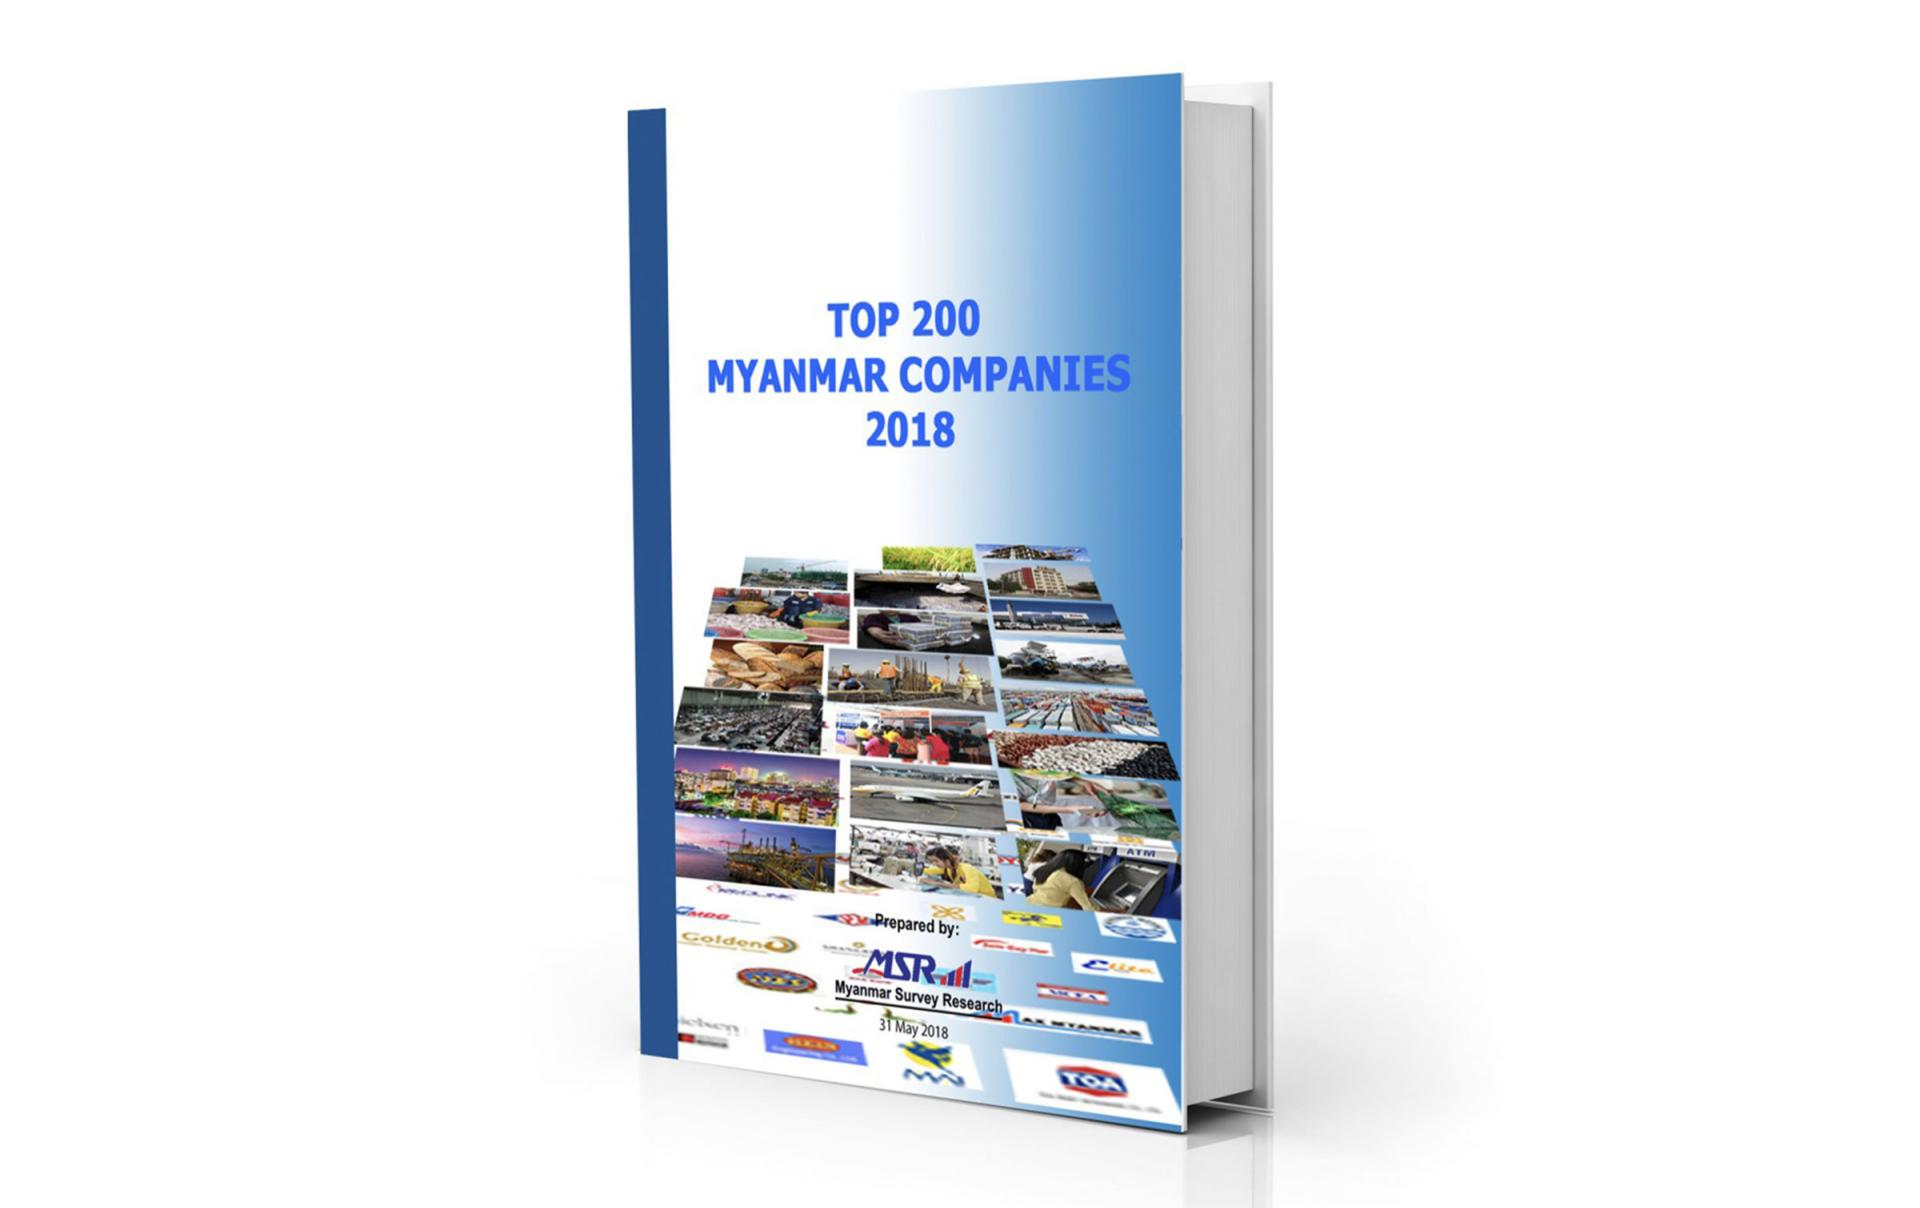 TOP 200 MYANMAR COMPANIES 2019 – available as of June 2019